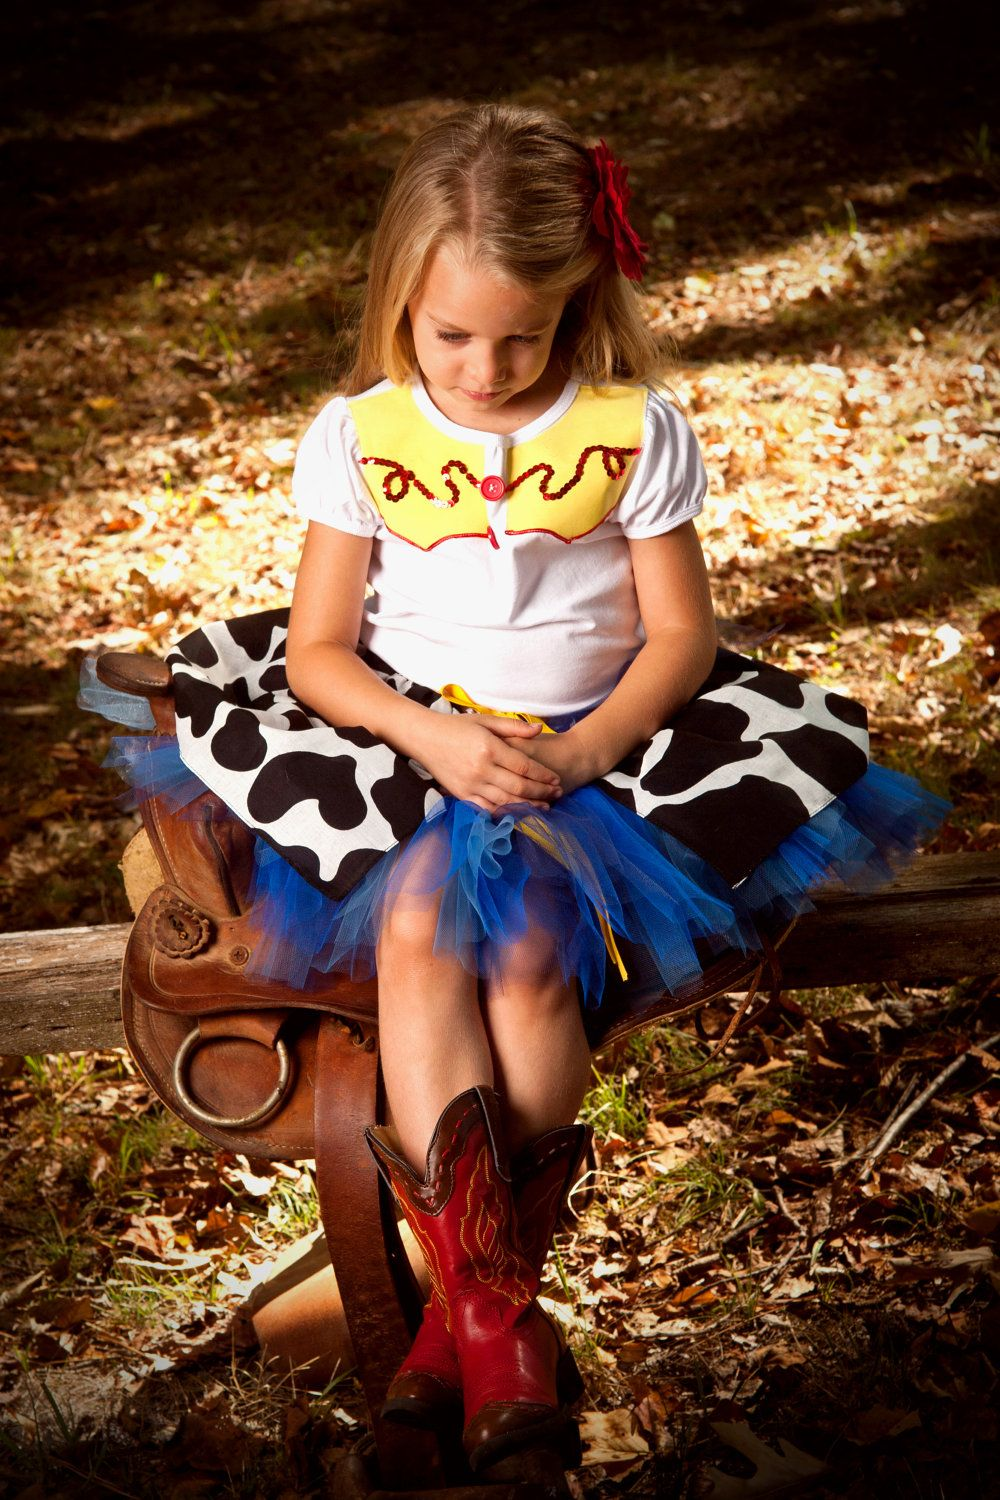 Jessie The Cow Girl Toy Story shirt and tutu. 4e0d2774865